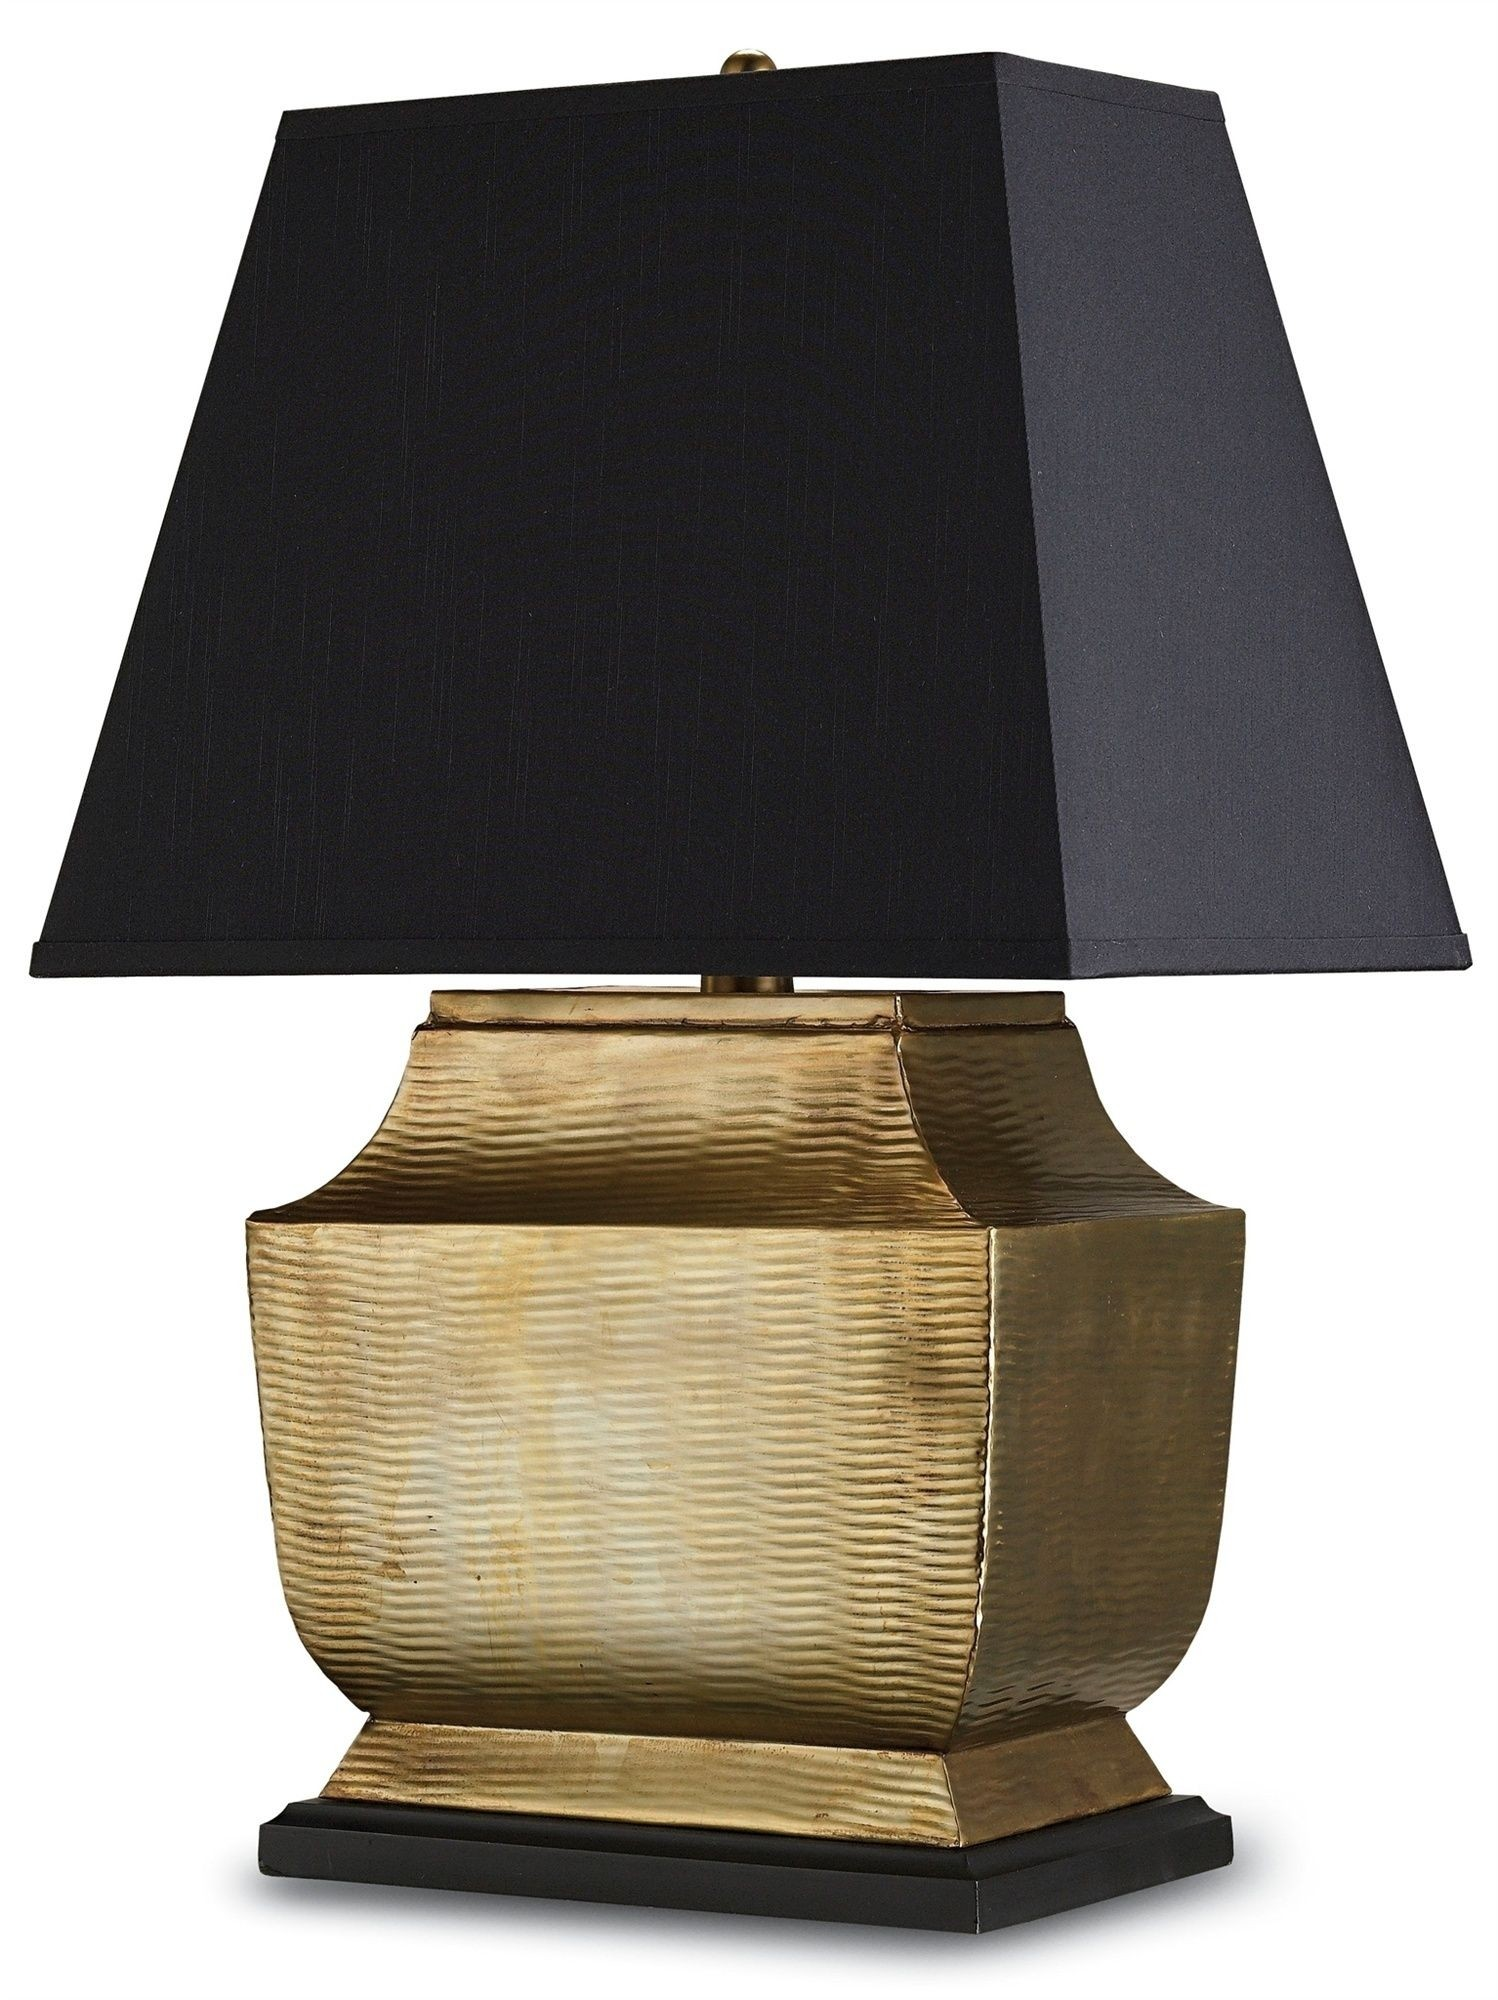 Exceptional Black Gold Liner Lamp Shades 6